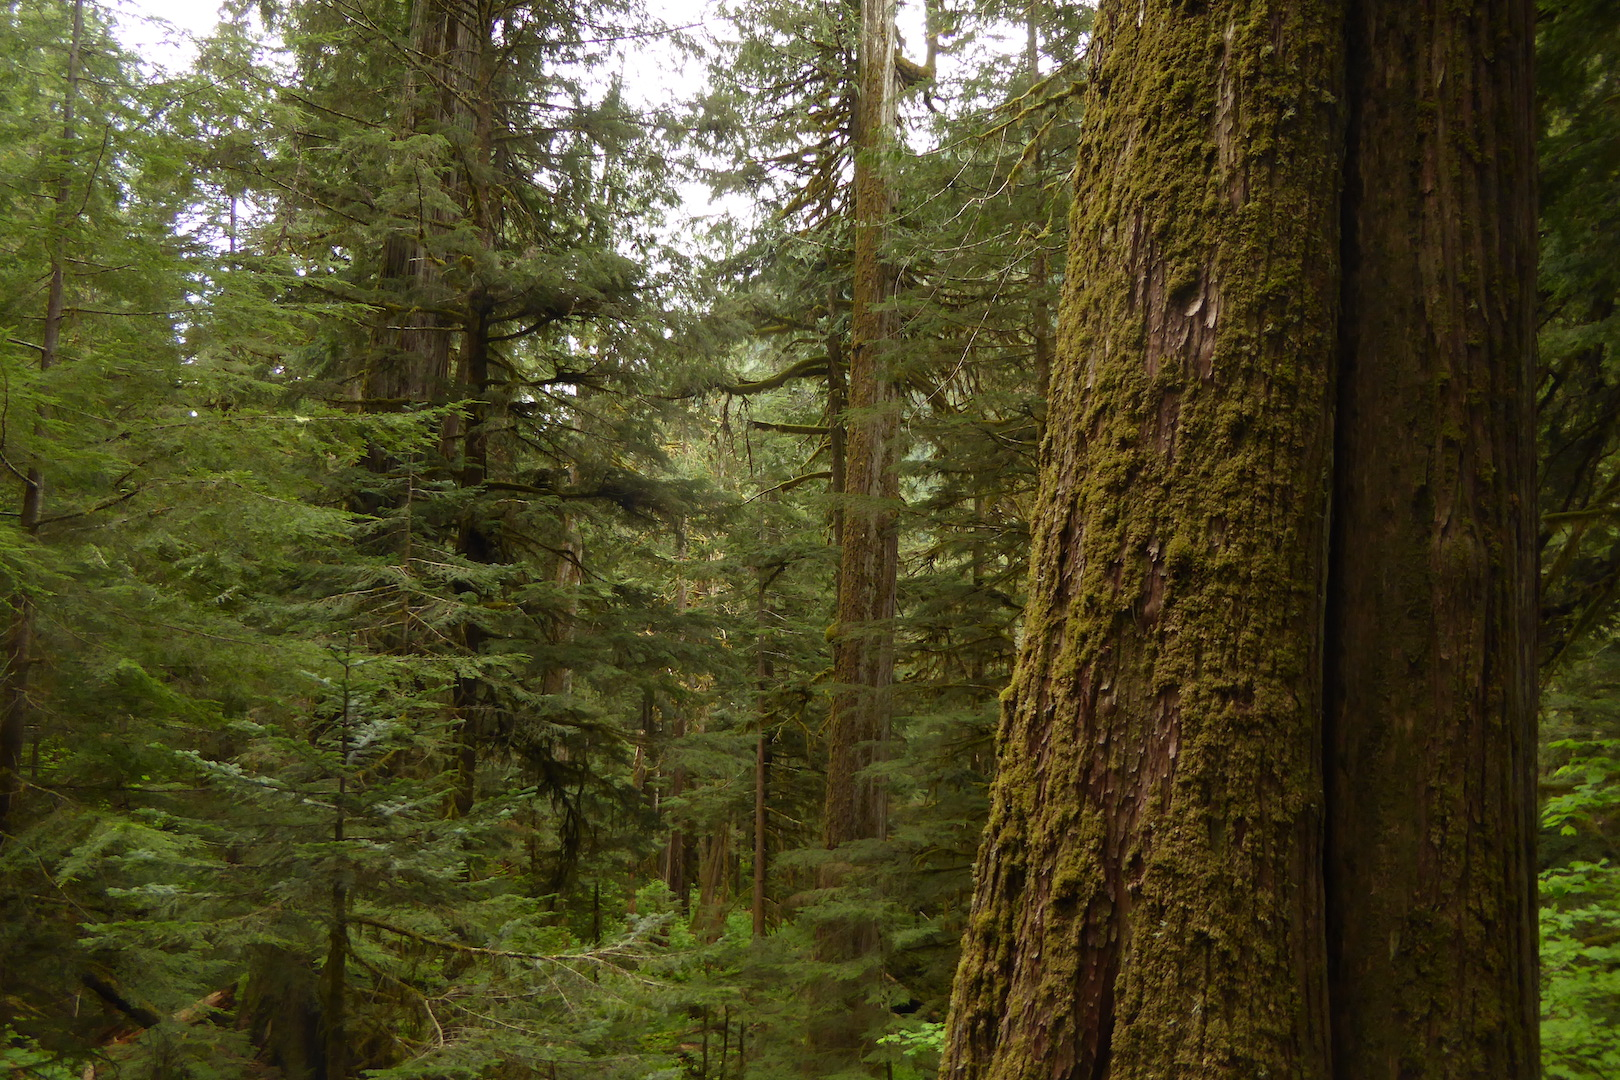 view of old growth forest with large coniferous trees